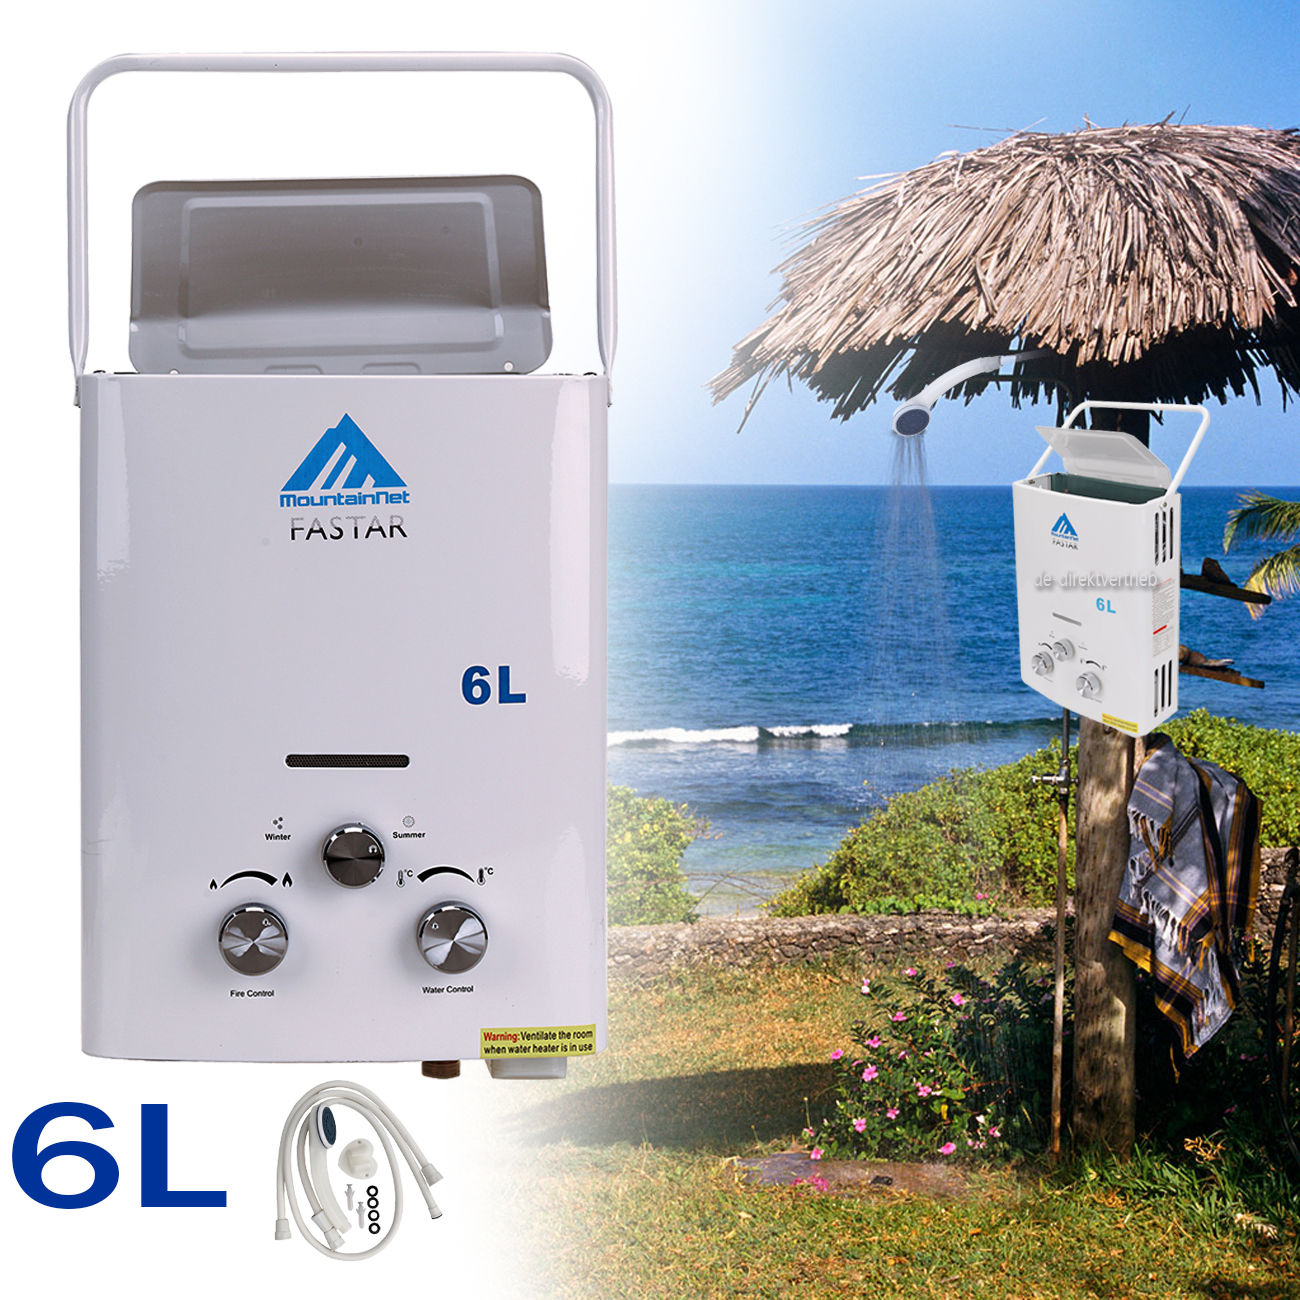 Hot Sales Portable Water Heater CAMPER CAMPING WATER HEATER BOILER LPG Gas 12KW 6L + INSTANT SHOWER Self Build